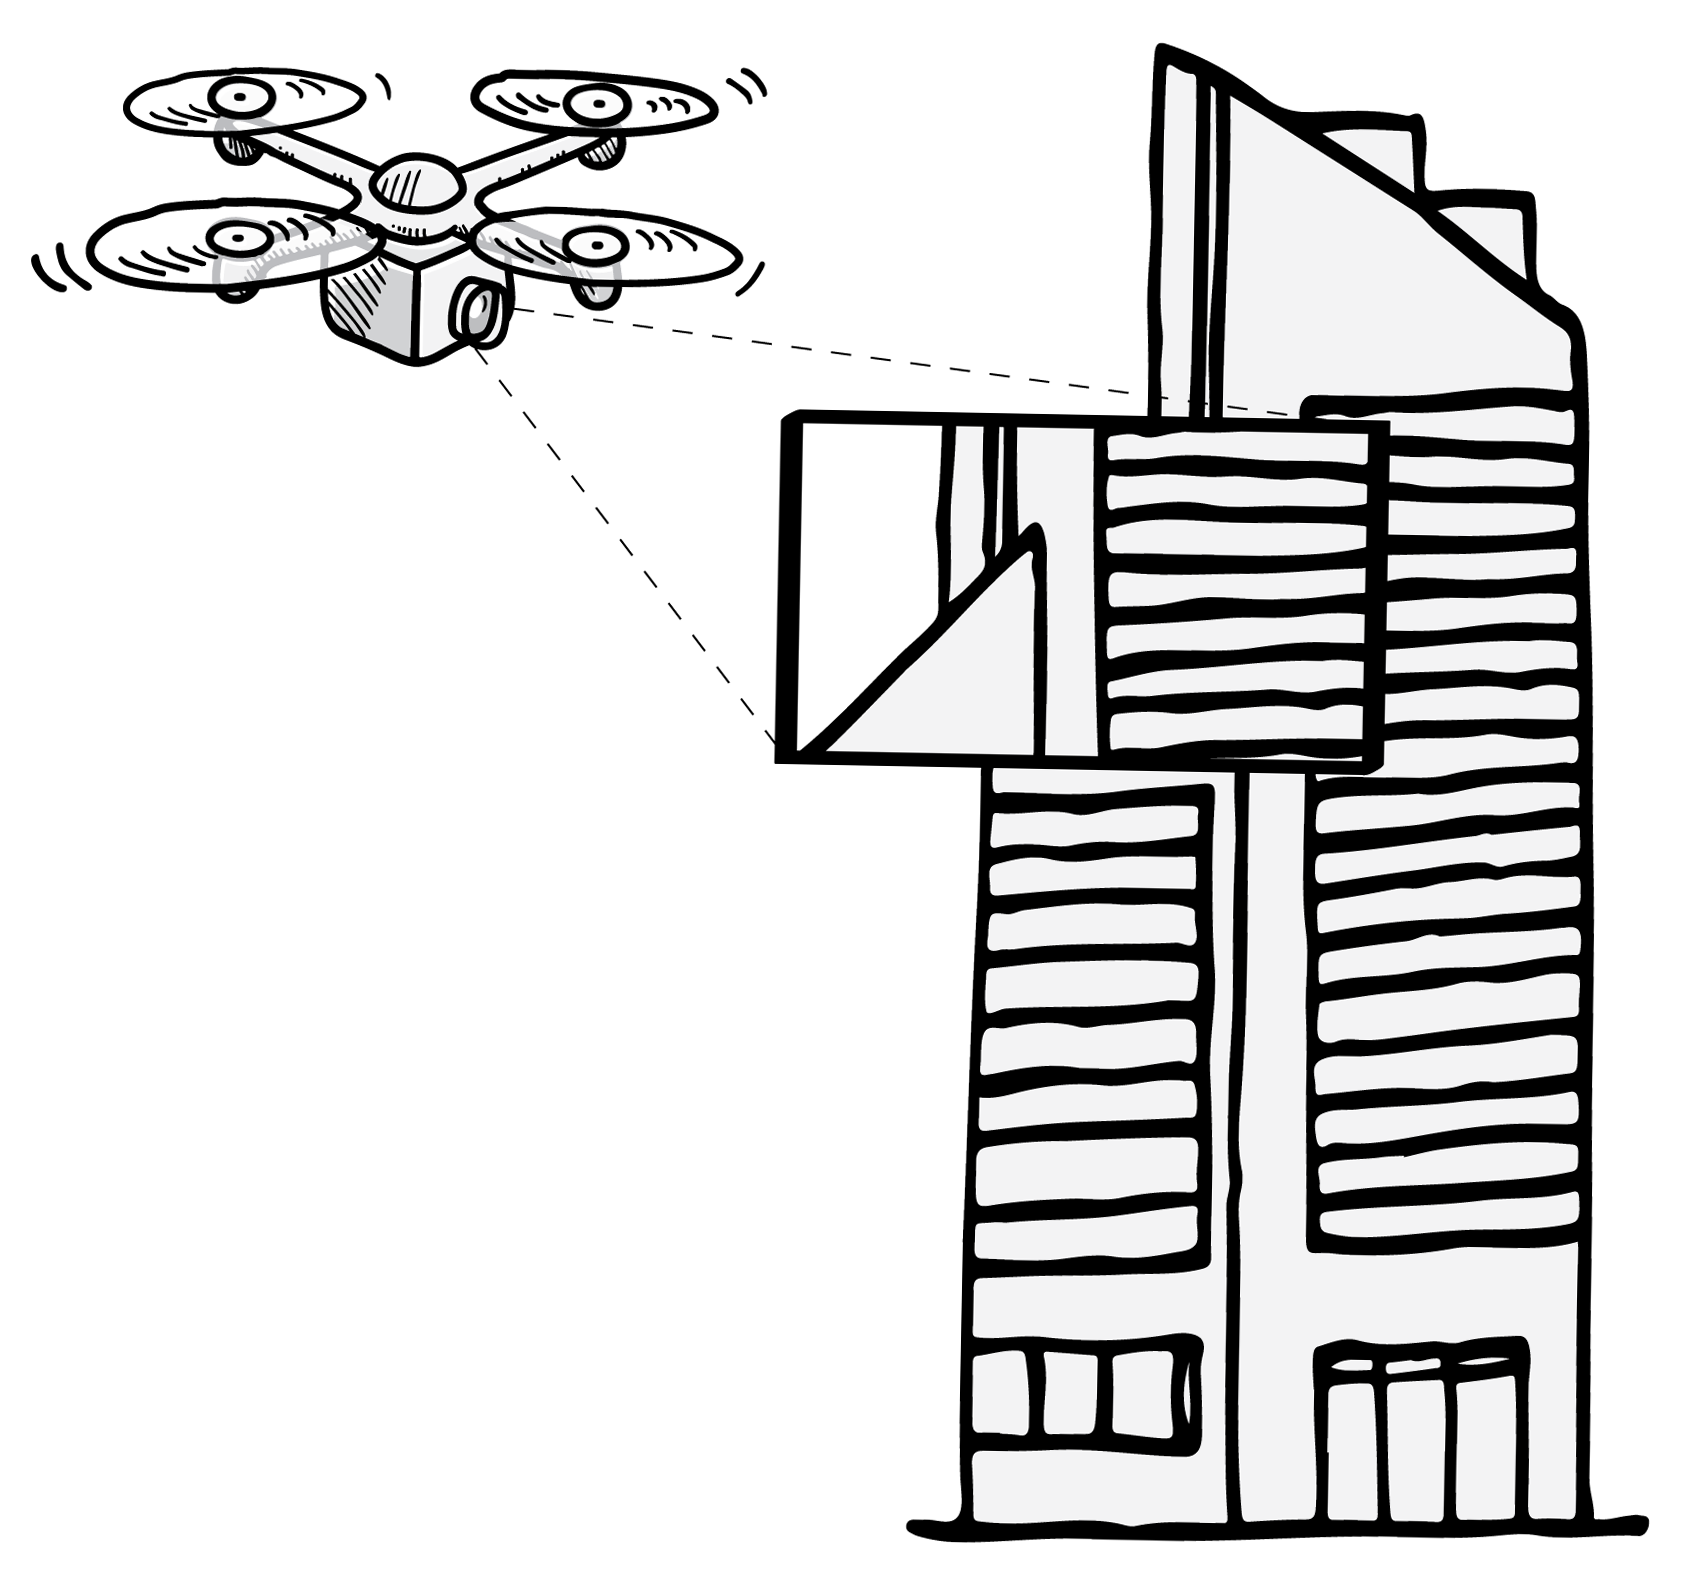 Aerial Photography and Aerial Filming diagram. UAV/RPAS/Drone flying close to a building to take photos and capture video footage.